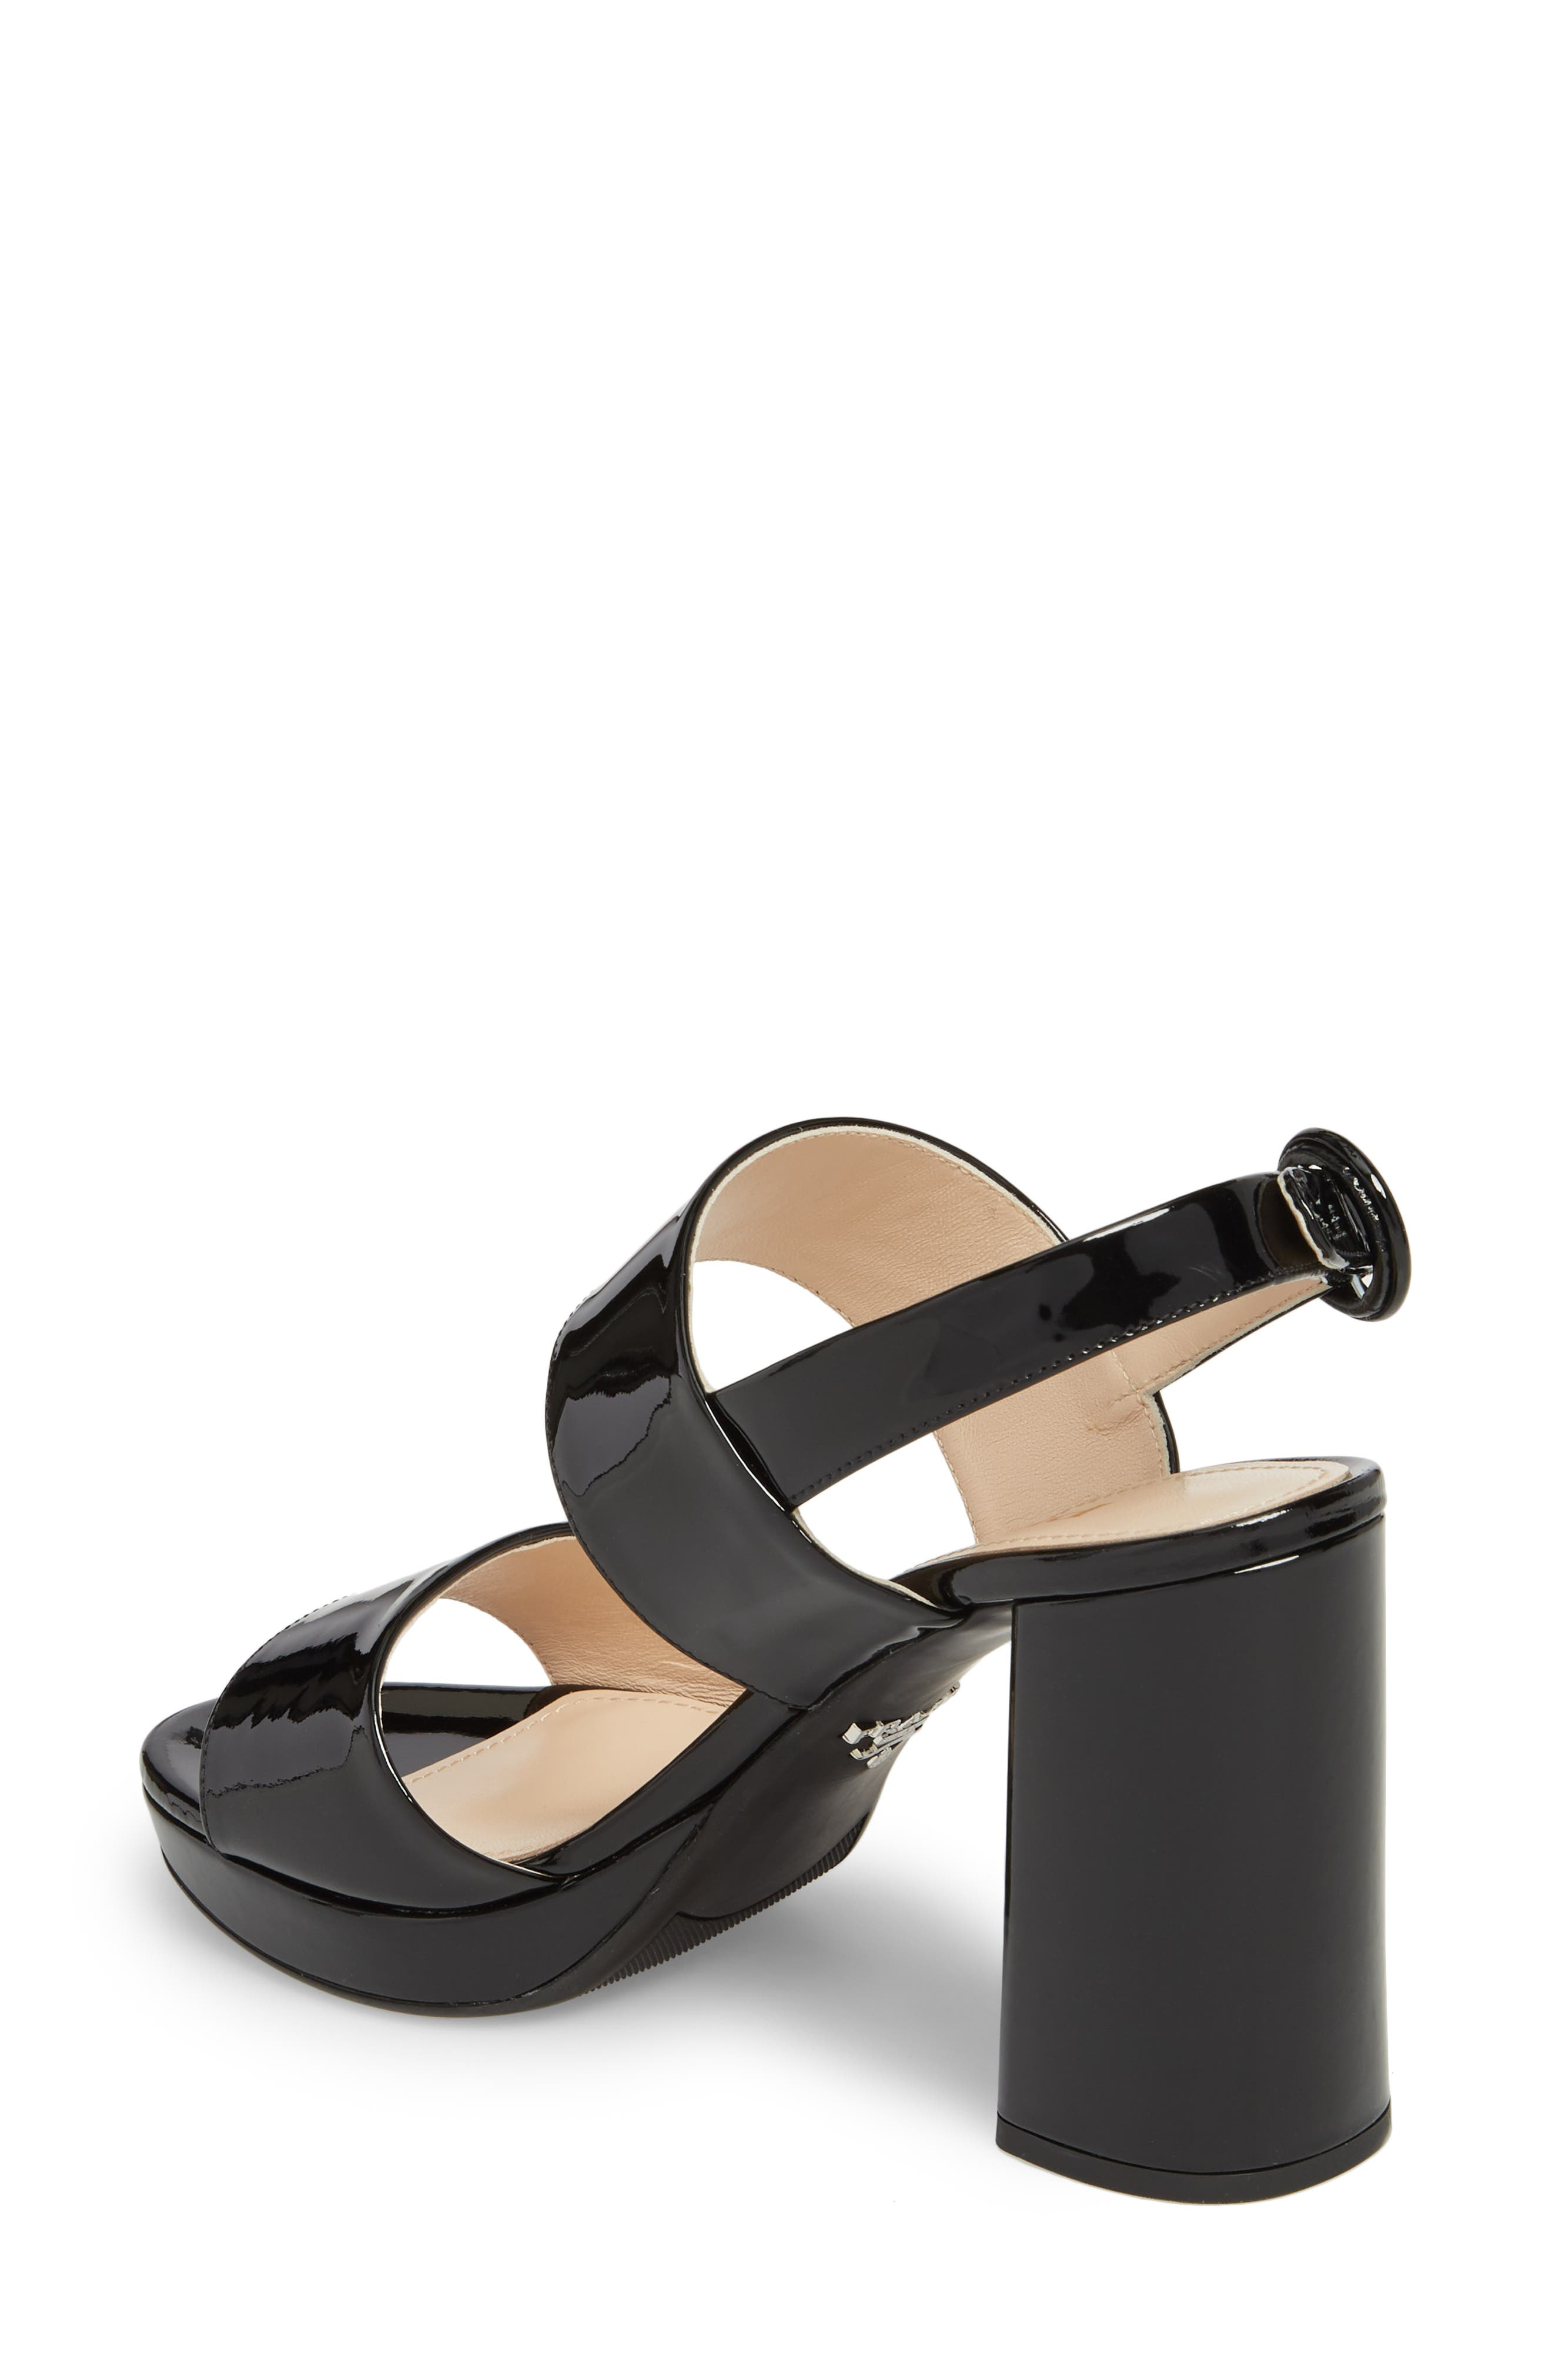 PRADA, Slingback Platform Sandal, Alternate thumbnail 2, color, BLACK PATENT